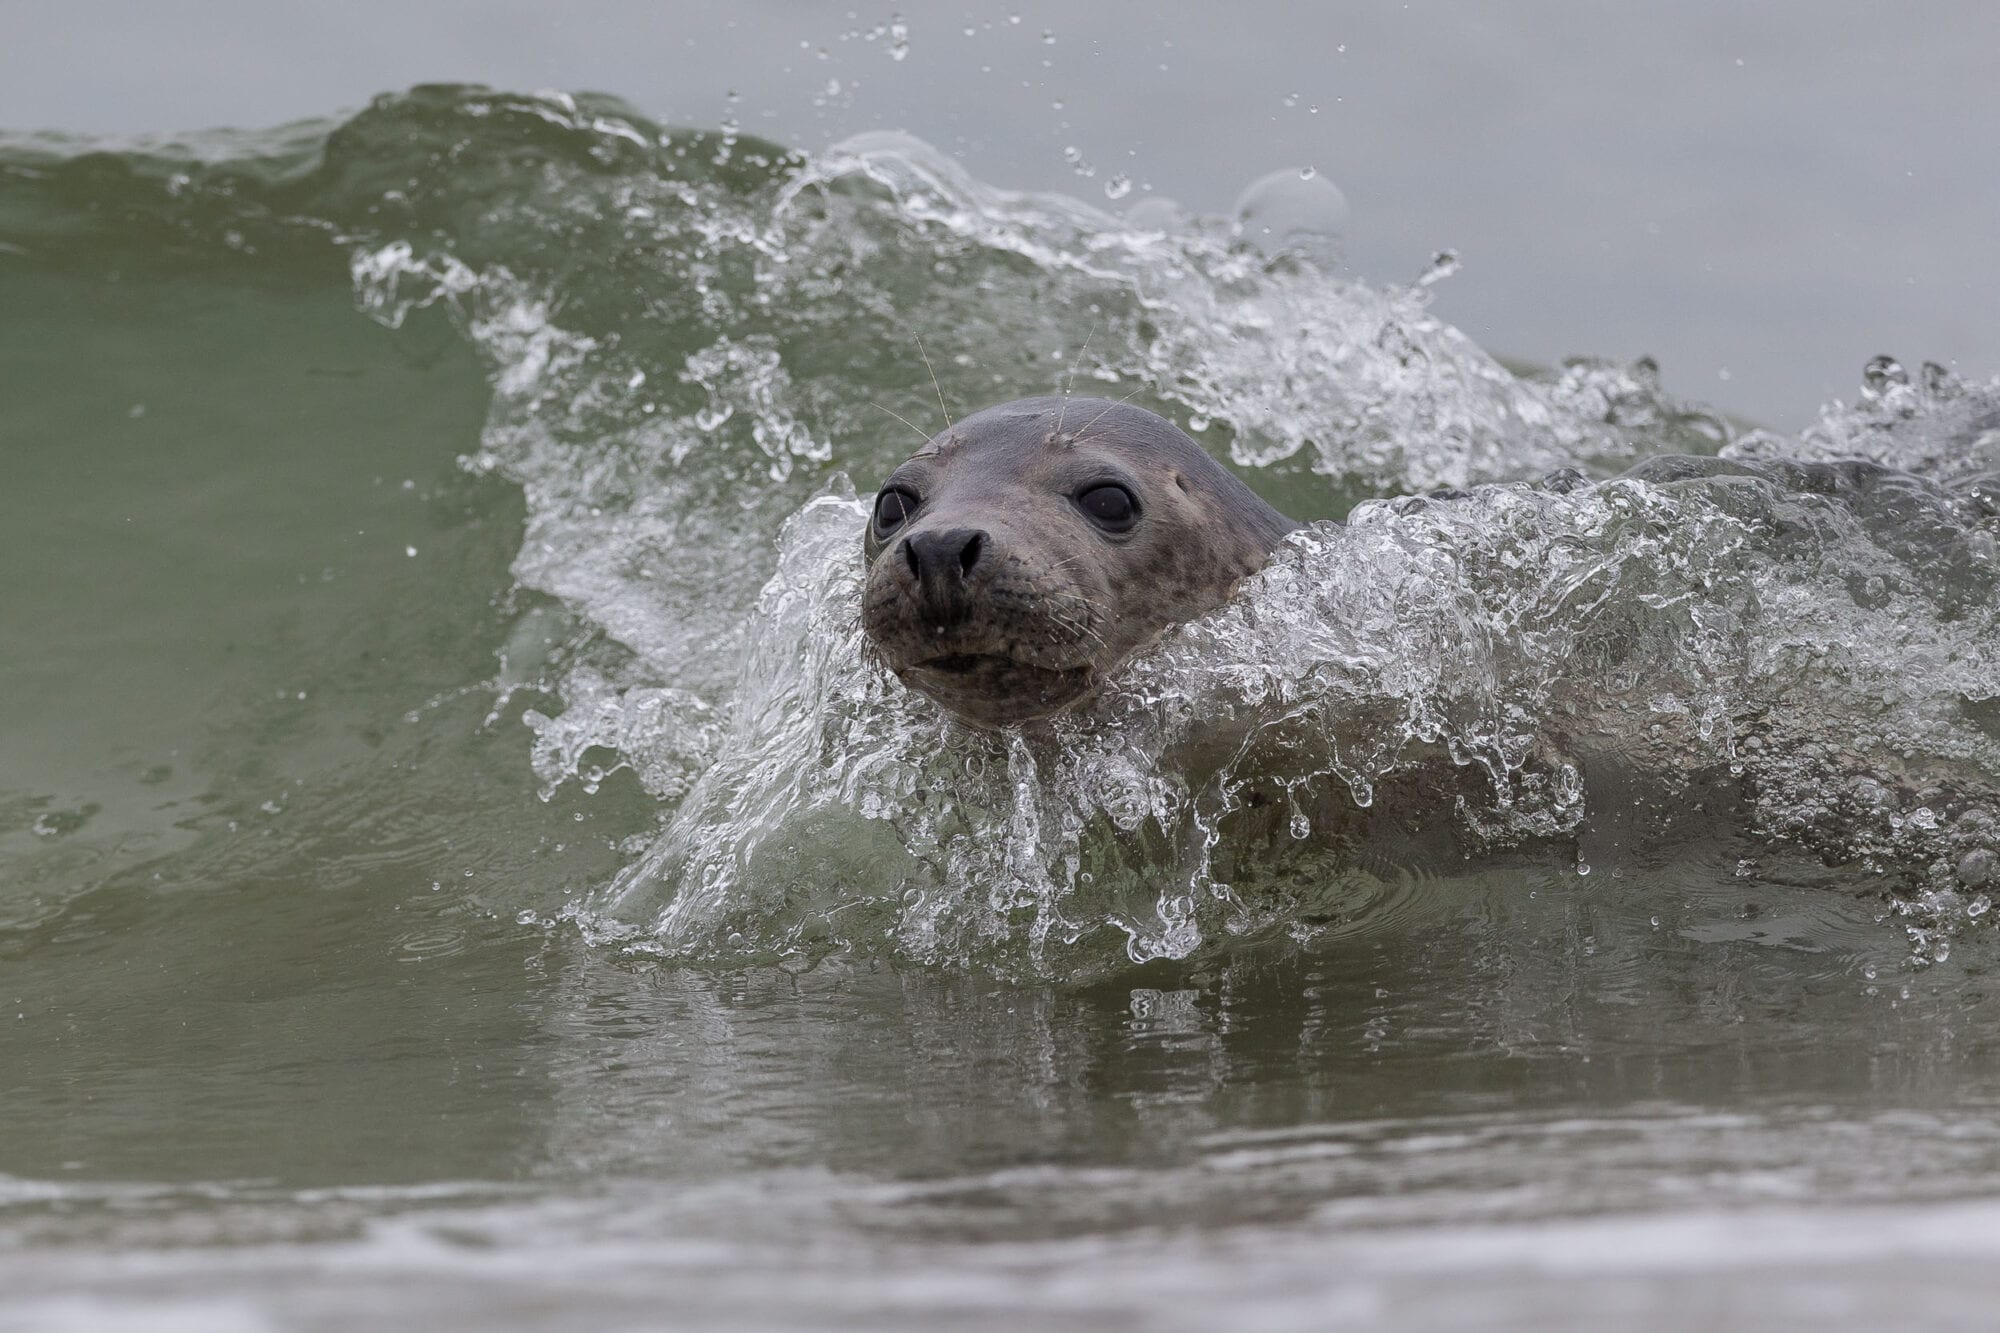 A grey seal's head emerges from a breaking wave